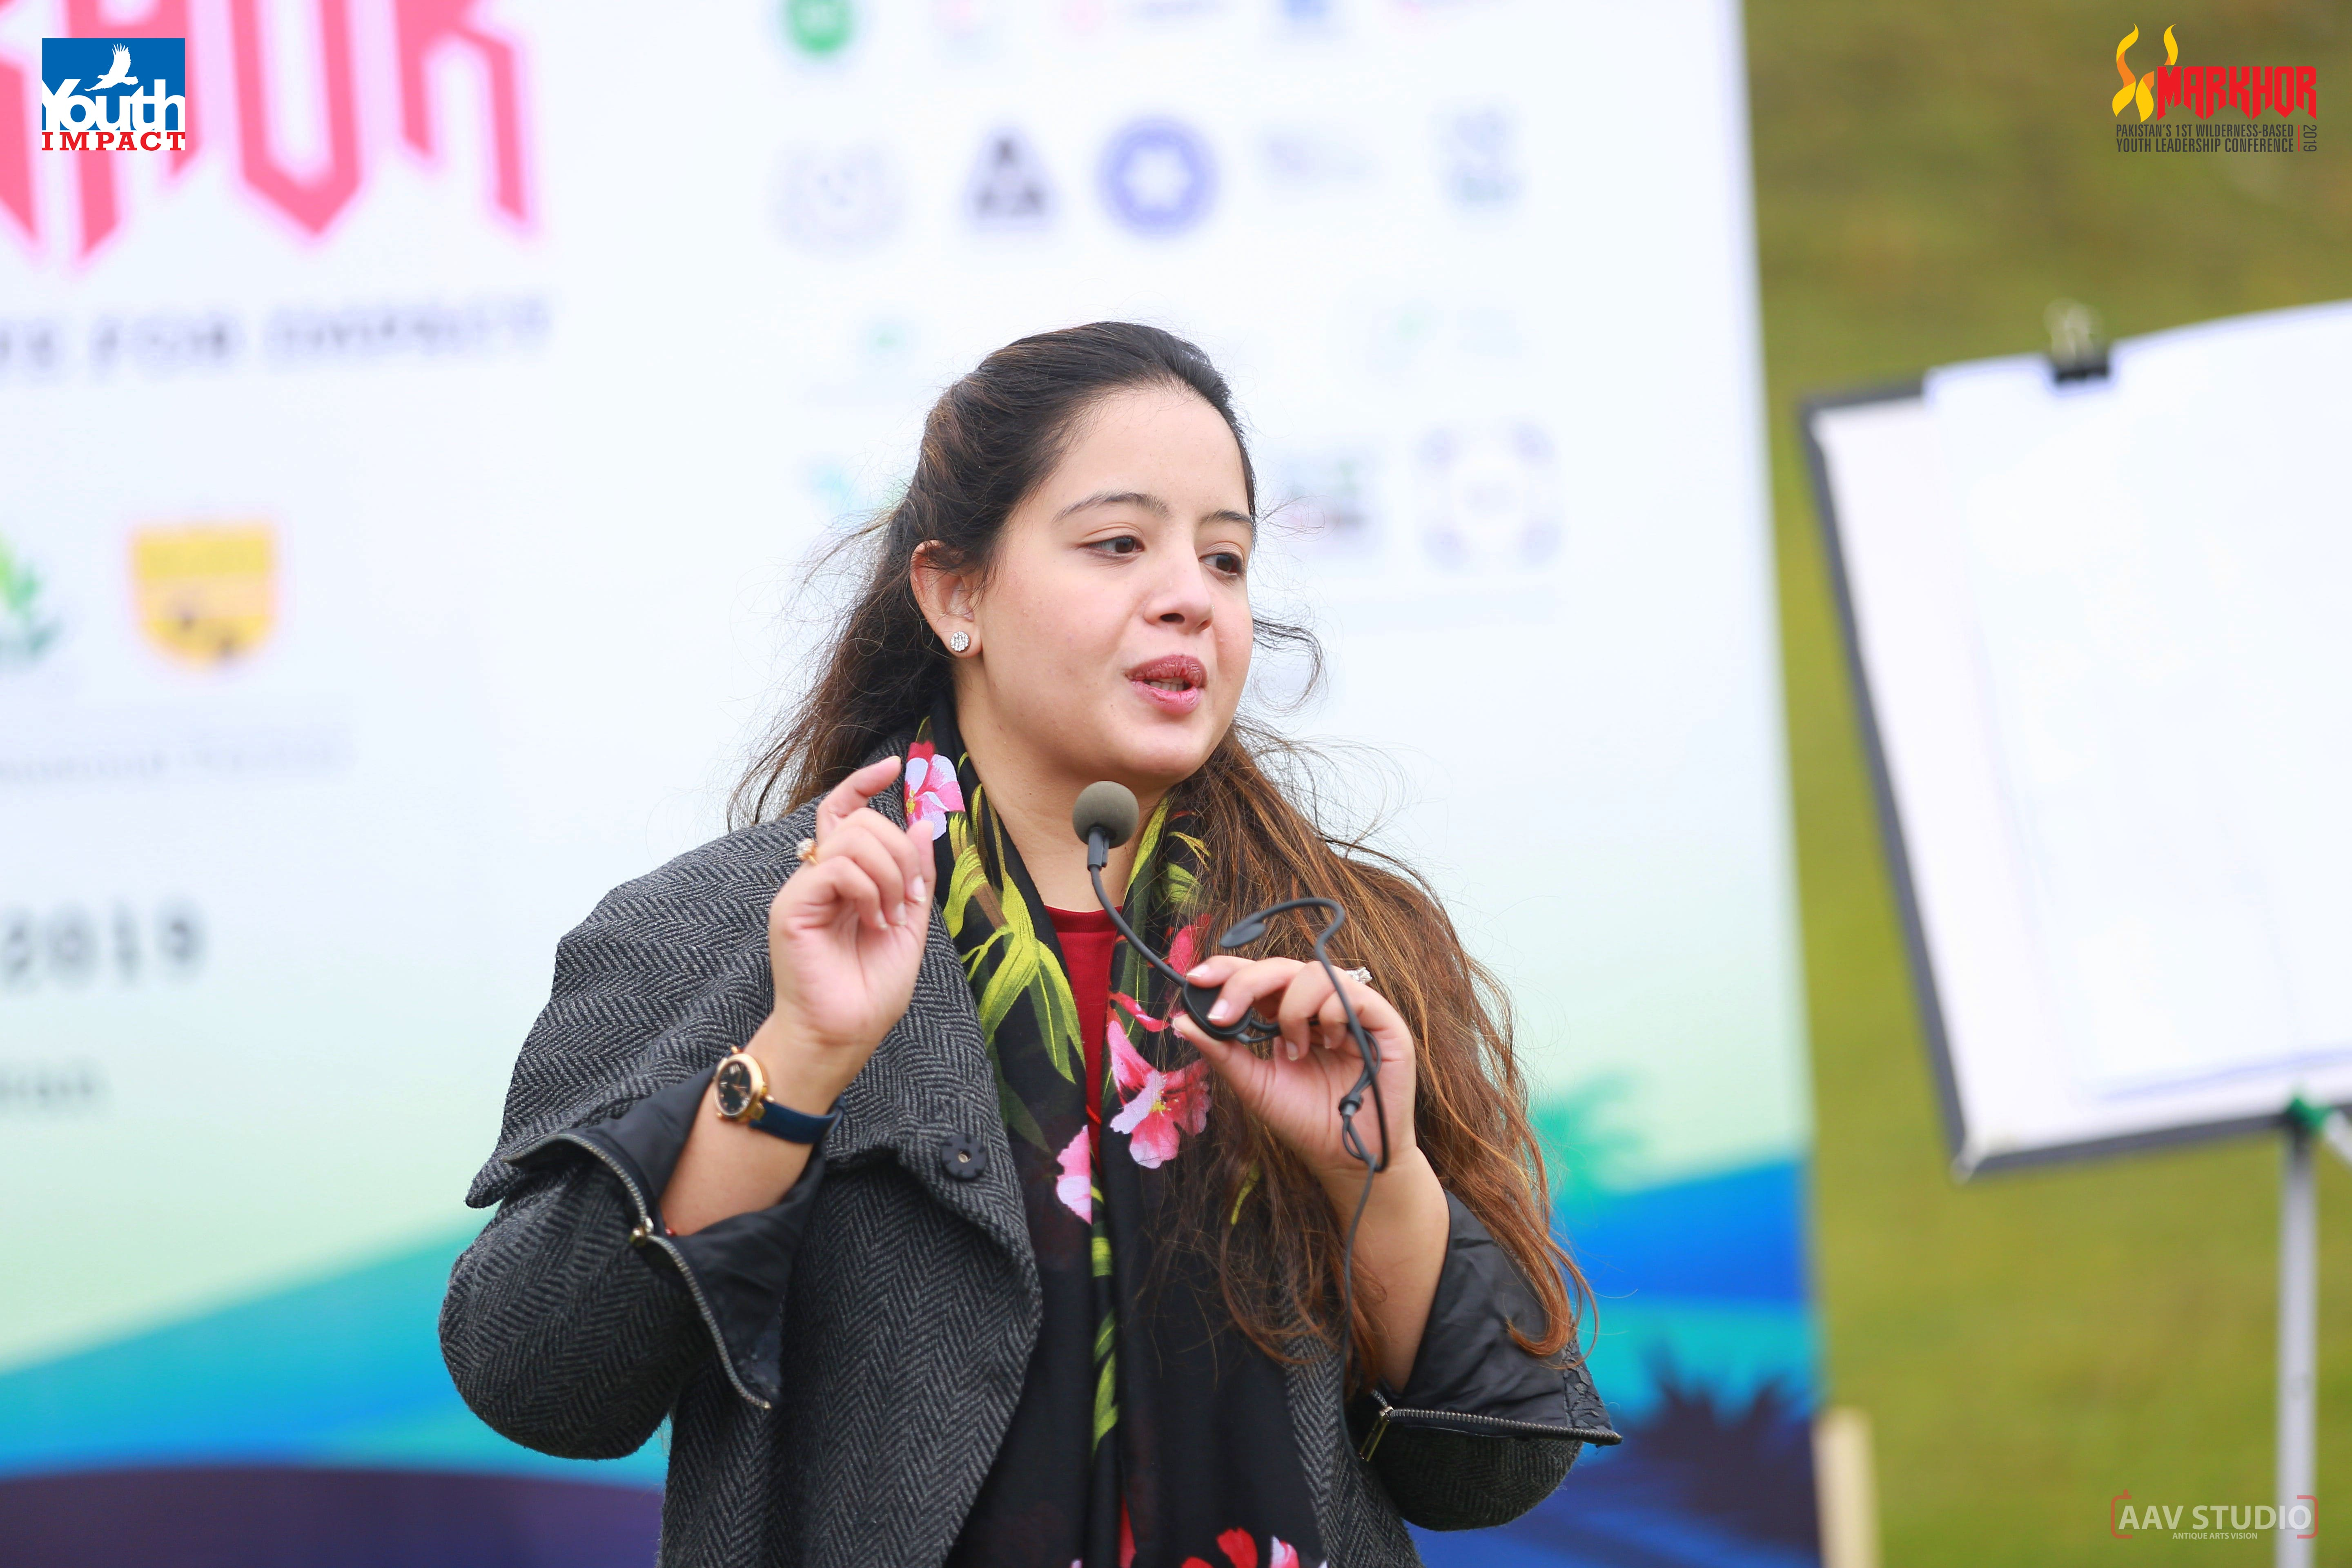 Khadija Zia from The Citizens Foundation speaking at Markhor 2019